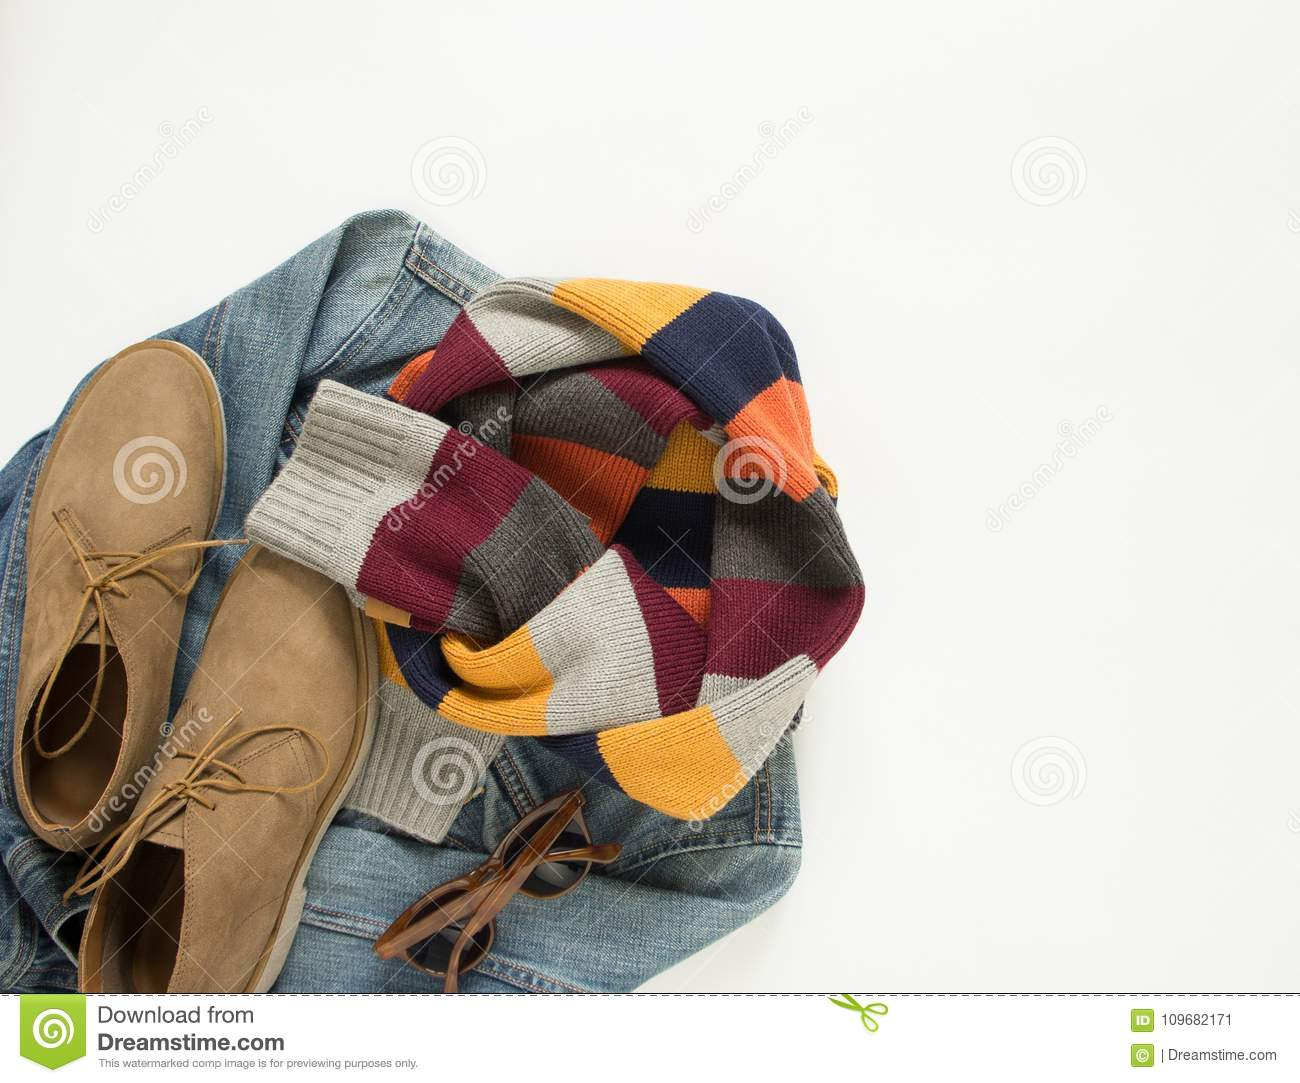 Spring, autumn female outfit. Set of clothes, shoes and accessories on white background. Blue denim jacket, stripe scarf and cream